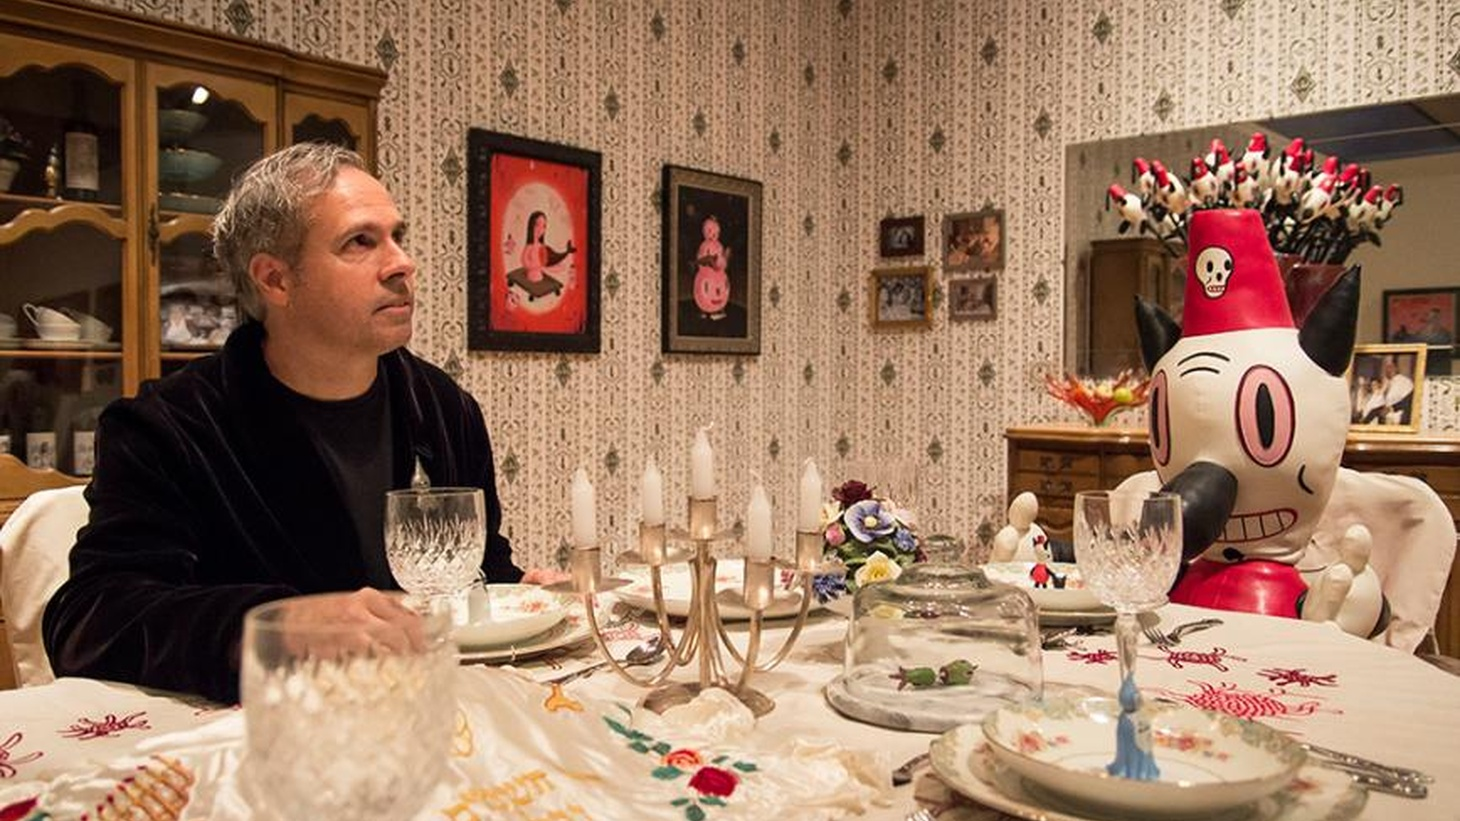 Pervasive artist Gary Baseman invites us into his childhood home, literally, with his new exhibit at the Skirball.